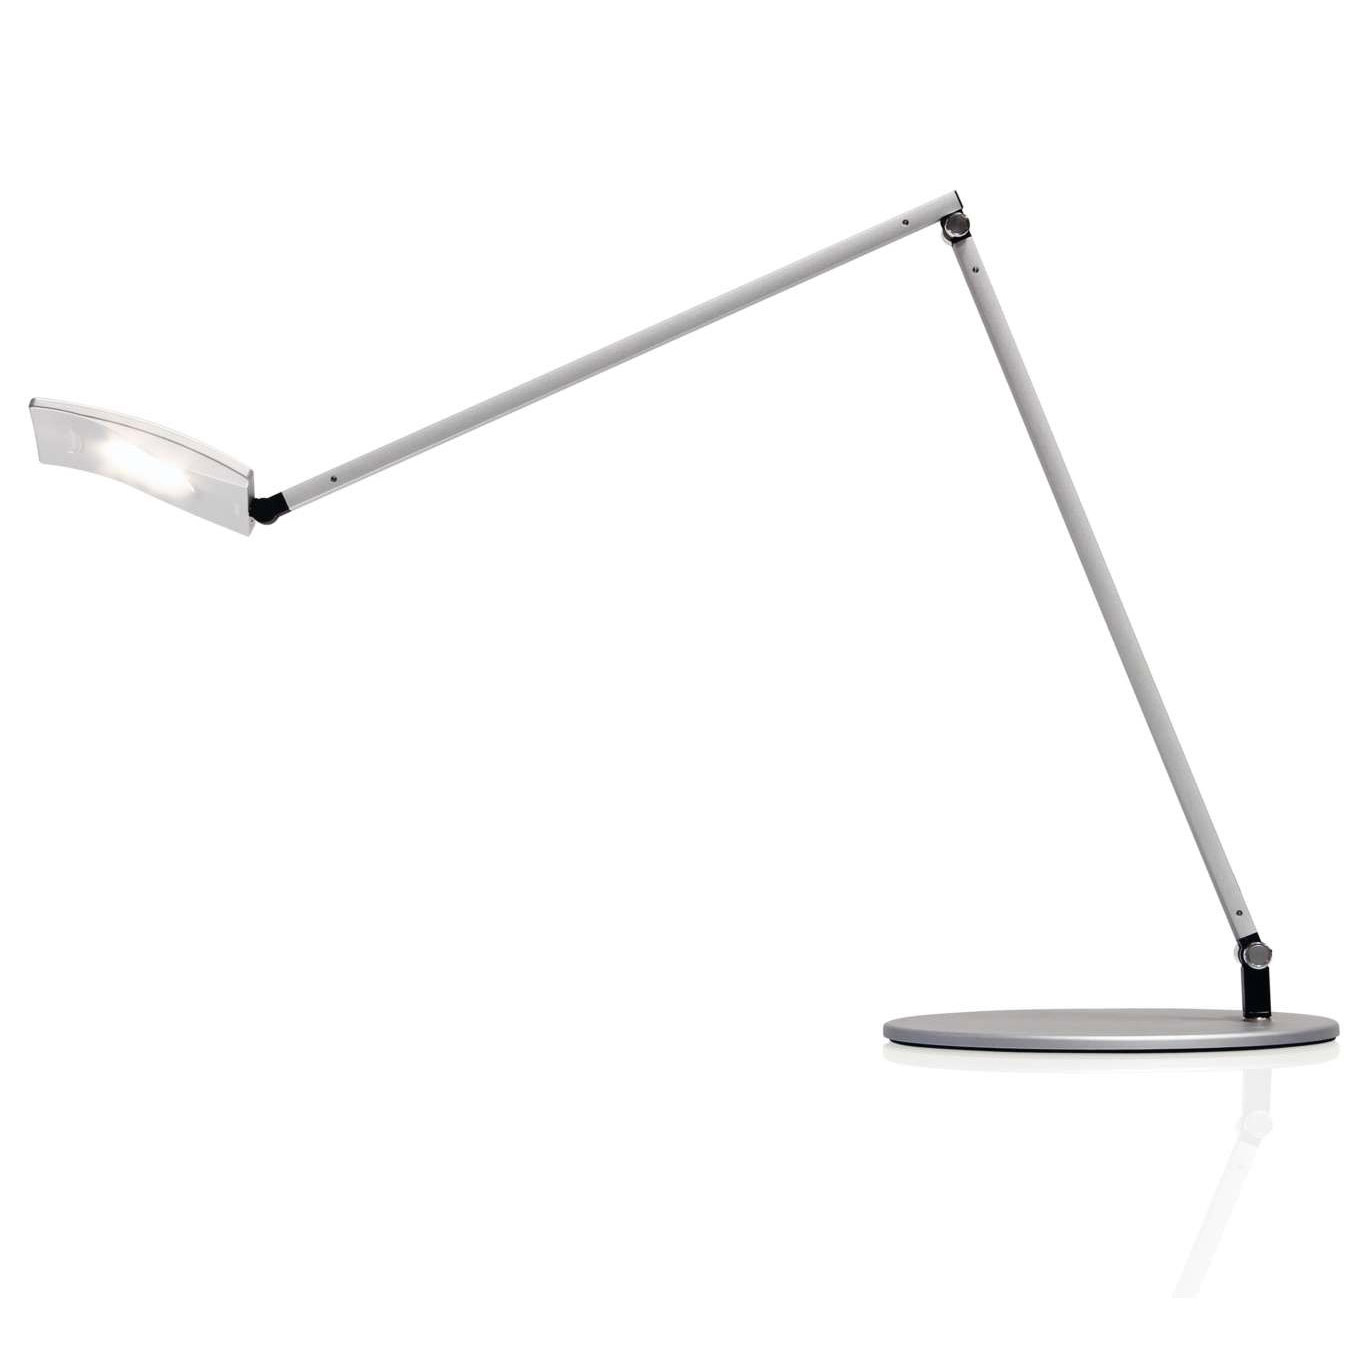 Mosso Pro Tunable White Desk Lamp By Koncept Lighting | AR2001 SIL USB